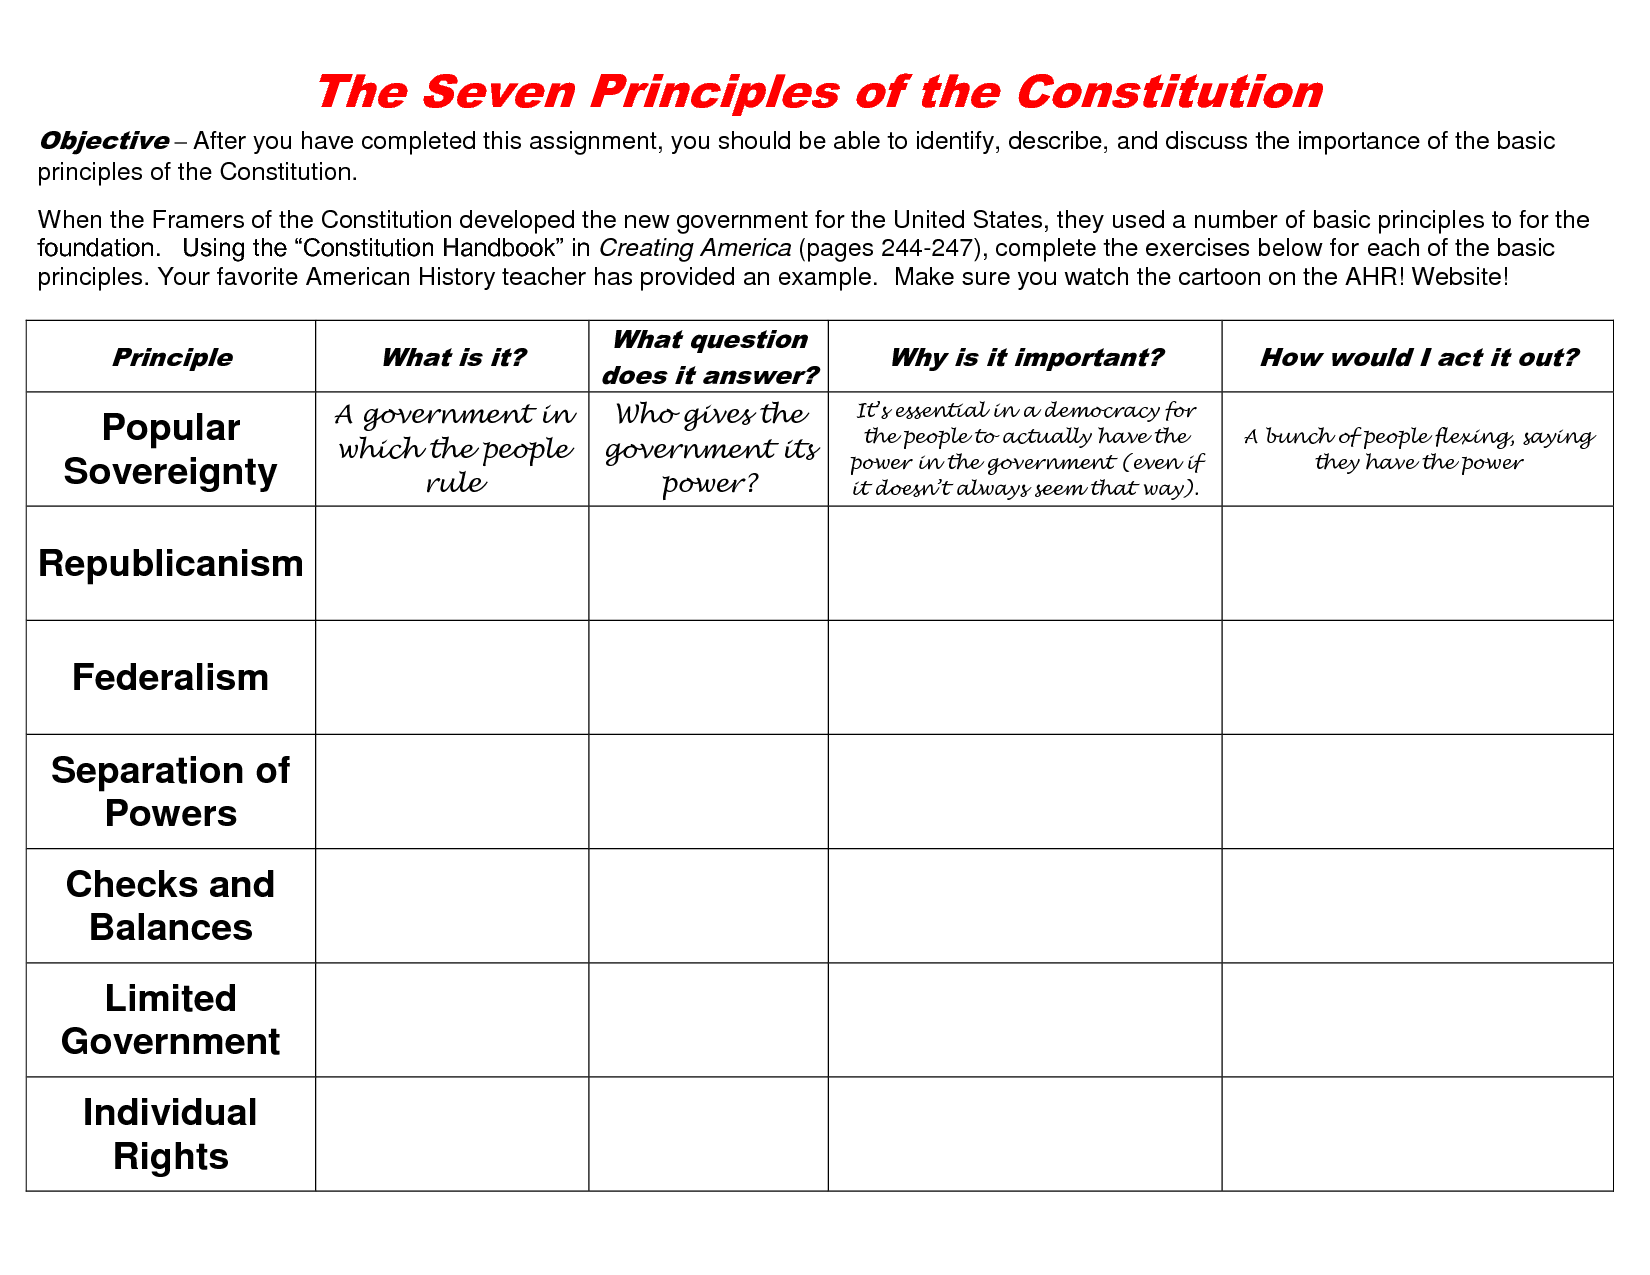 Constitutional Principles scope of work template